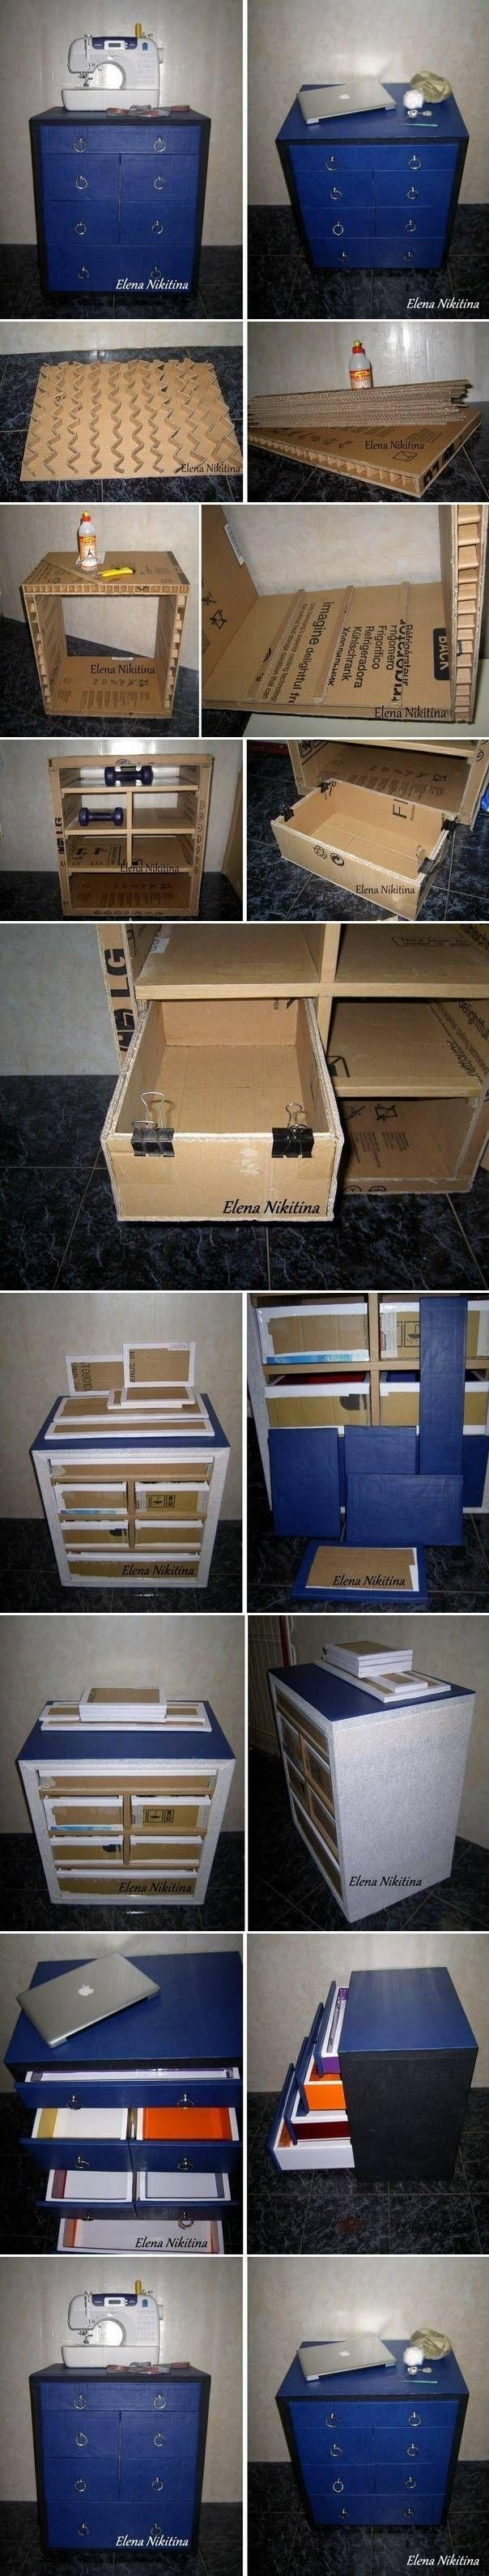 Best 20+ Cardboard Furniture Ideas On Pinterest | Cardboard Chair Intended For Cardboard Sofas (Image 5 of 20)